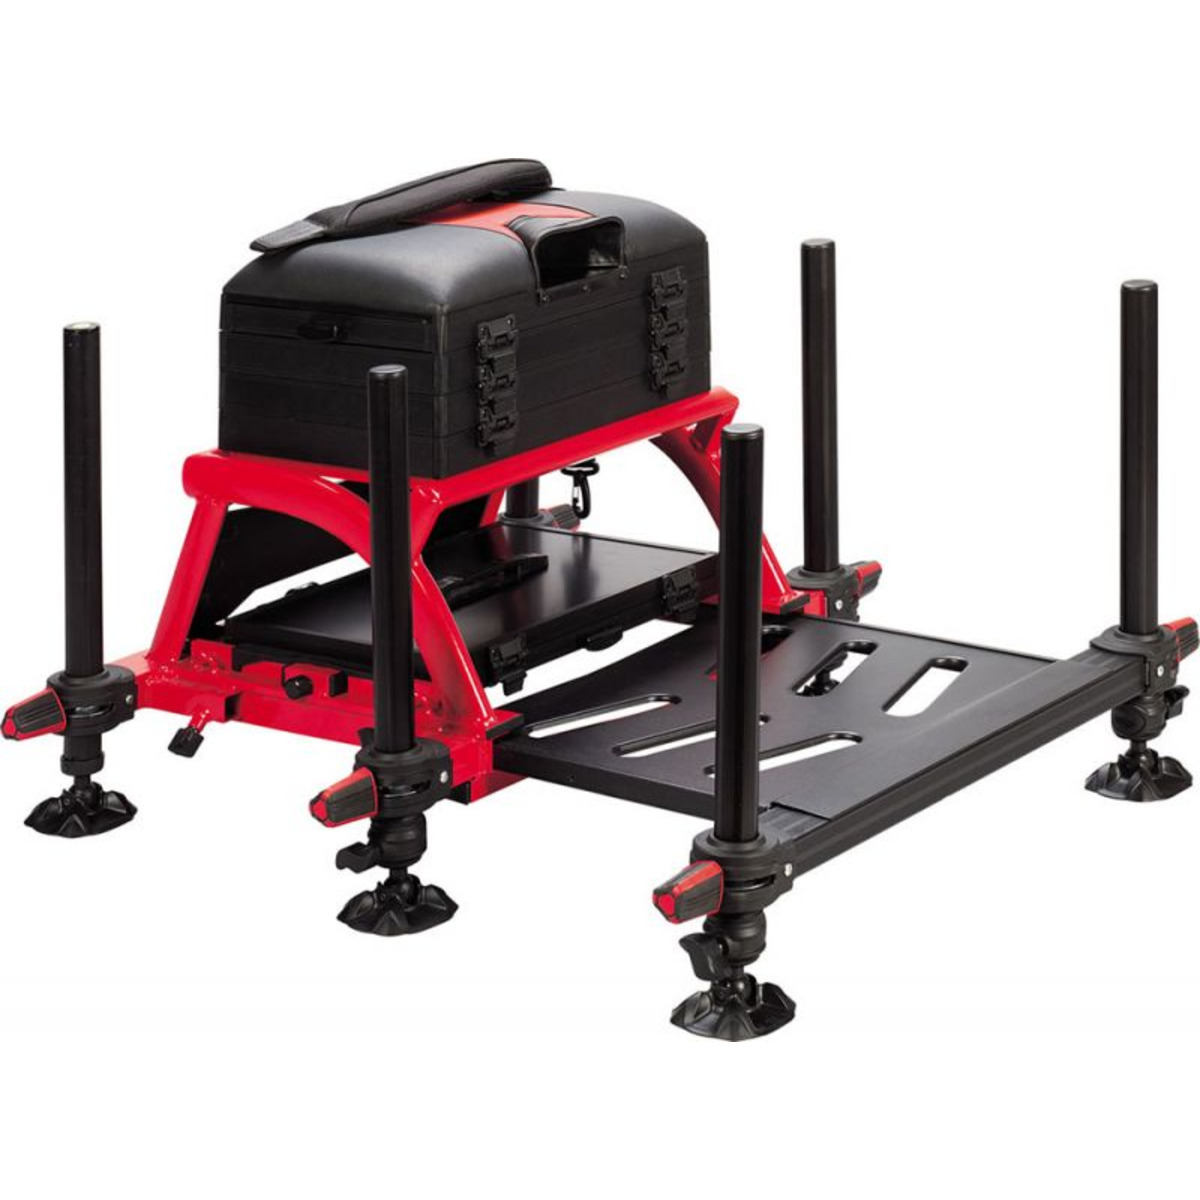 Trabucco Seatbox Gnt-X36 Station - Red